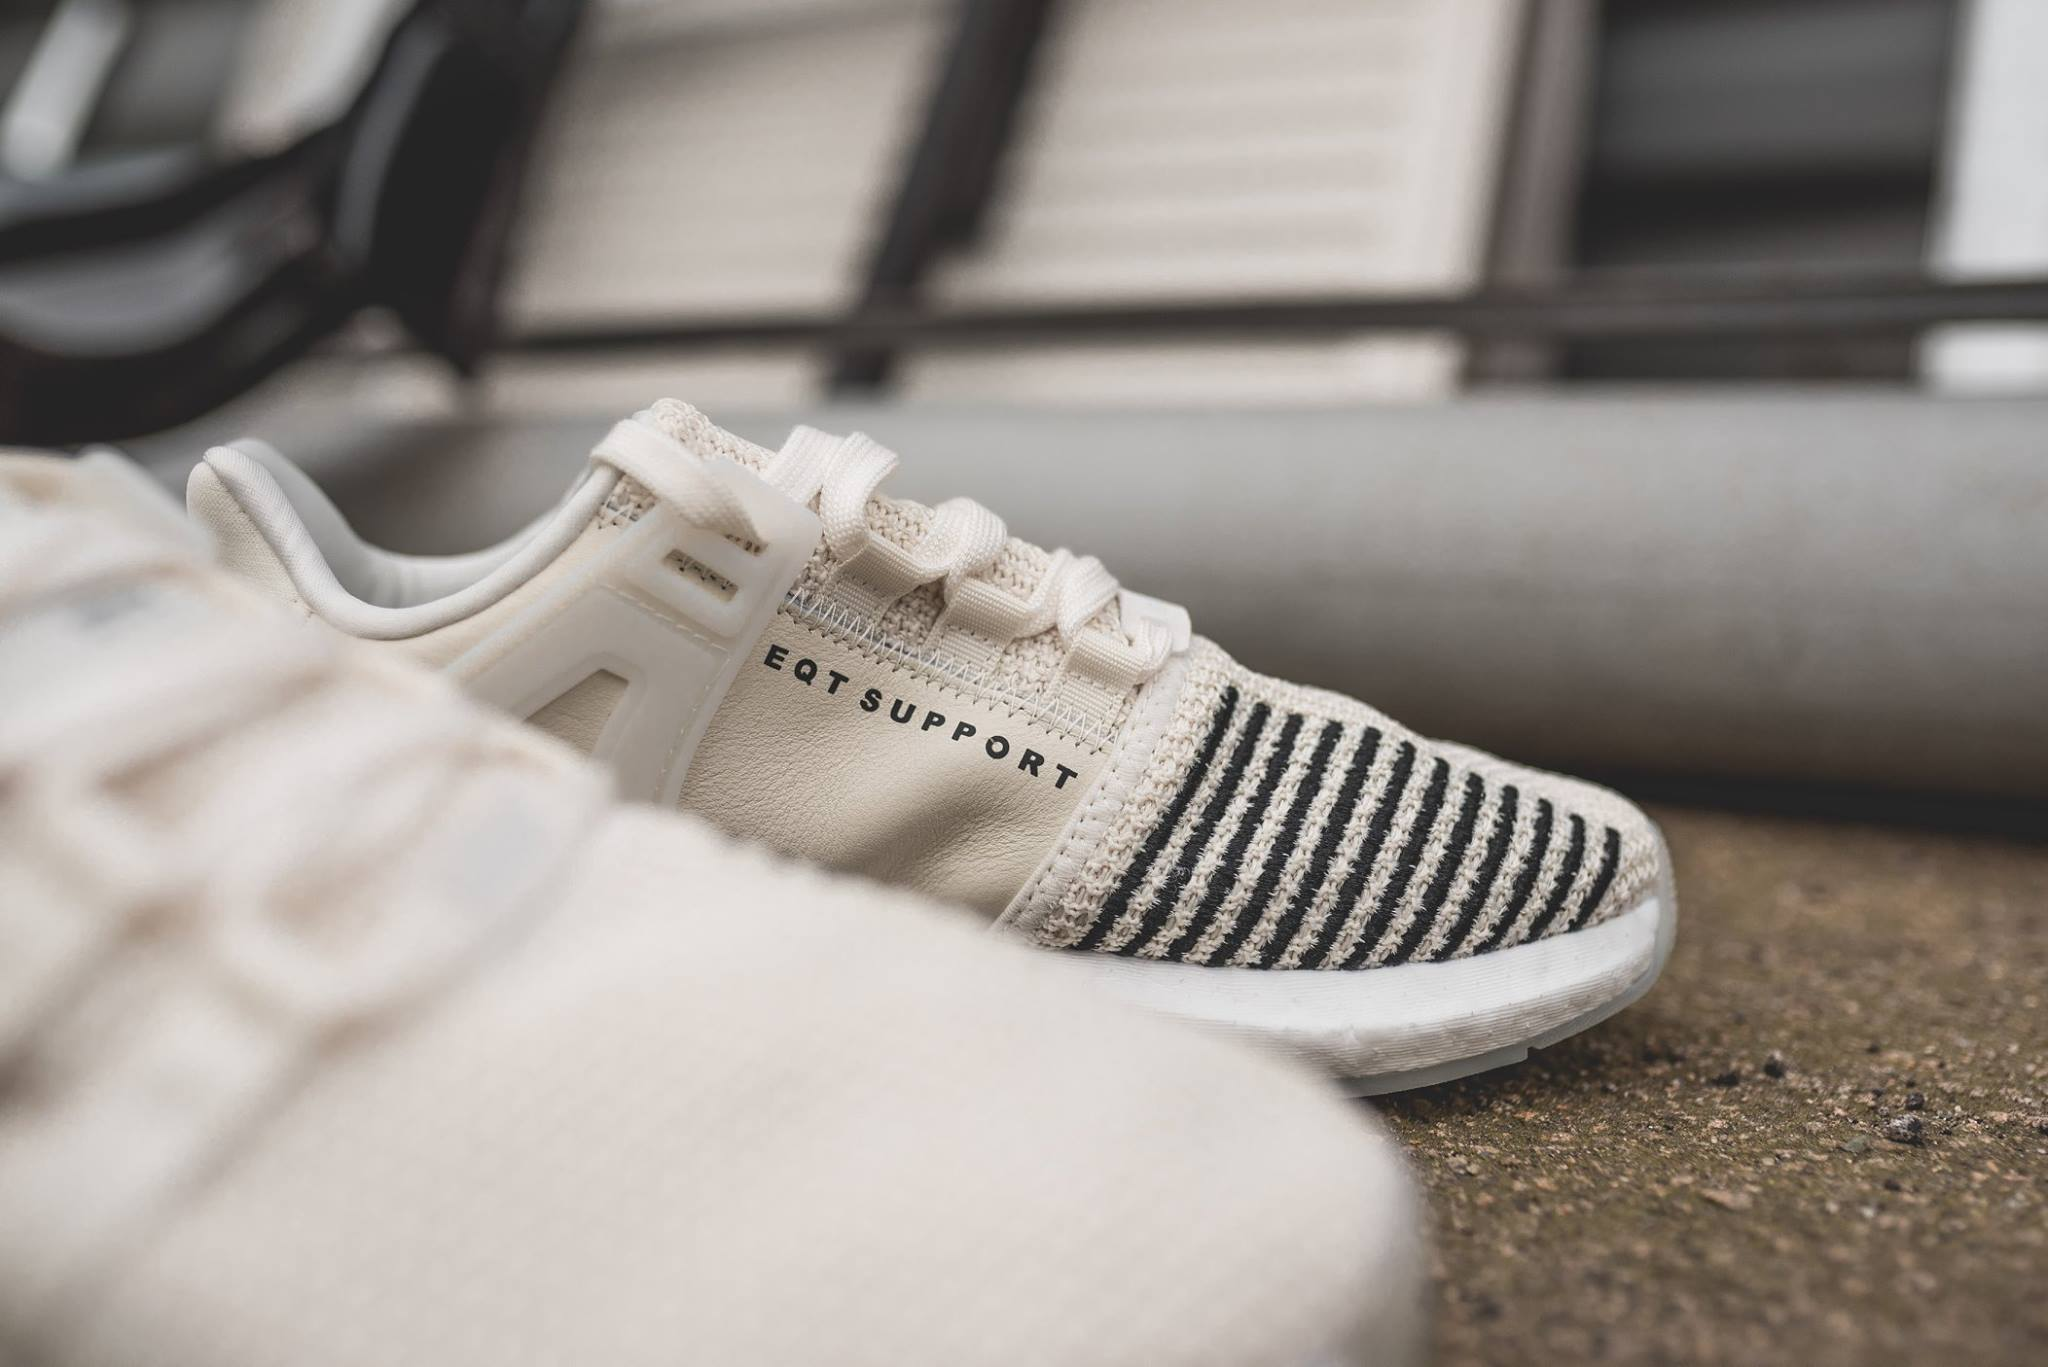 adidas EQT Support 93/17 - Off White/Footwear White #BZ0586-Preorder Item-Navy Selected Shop